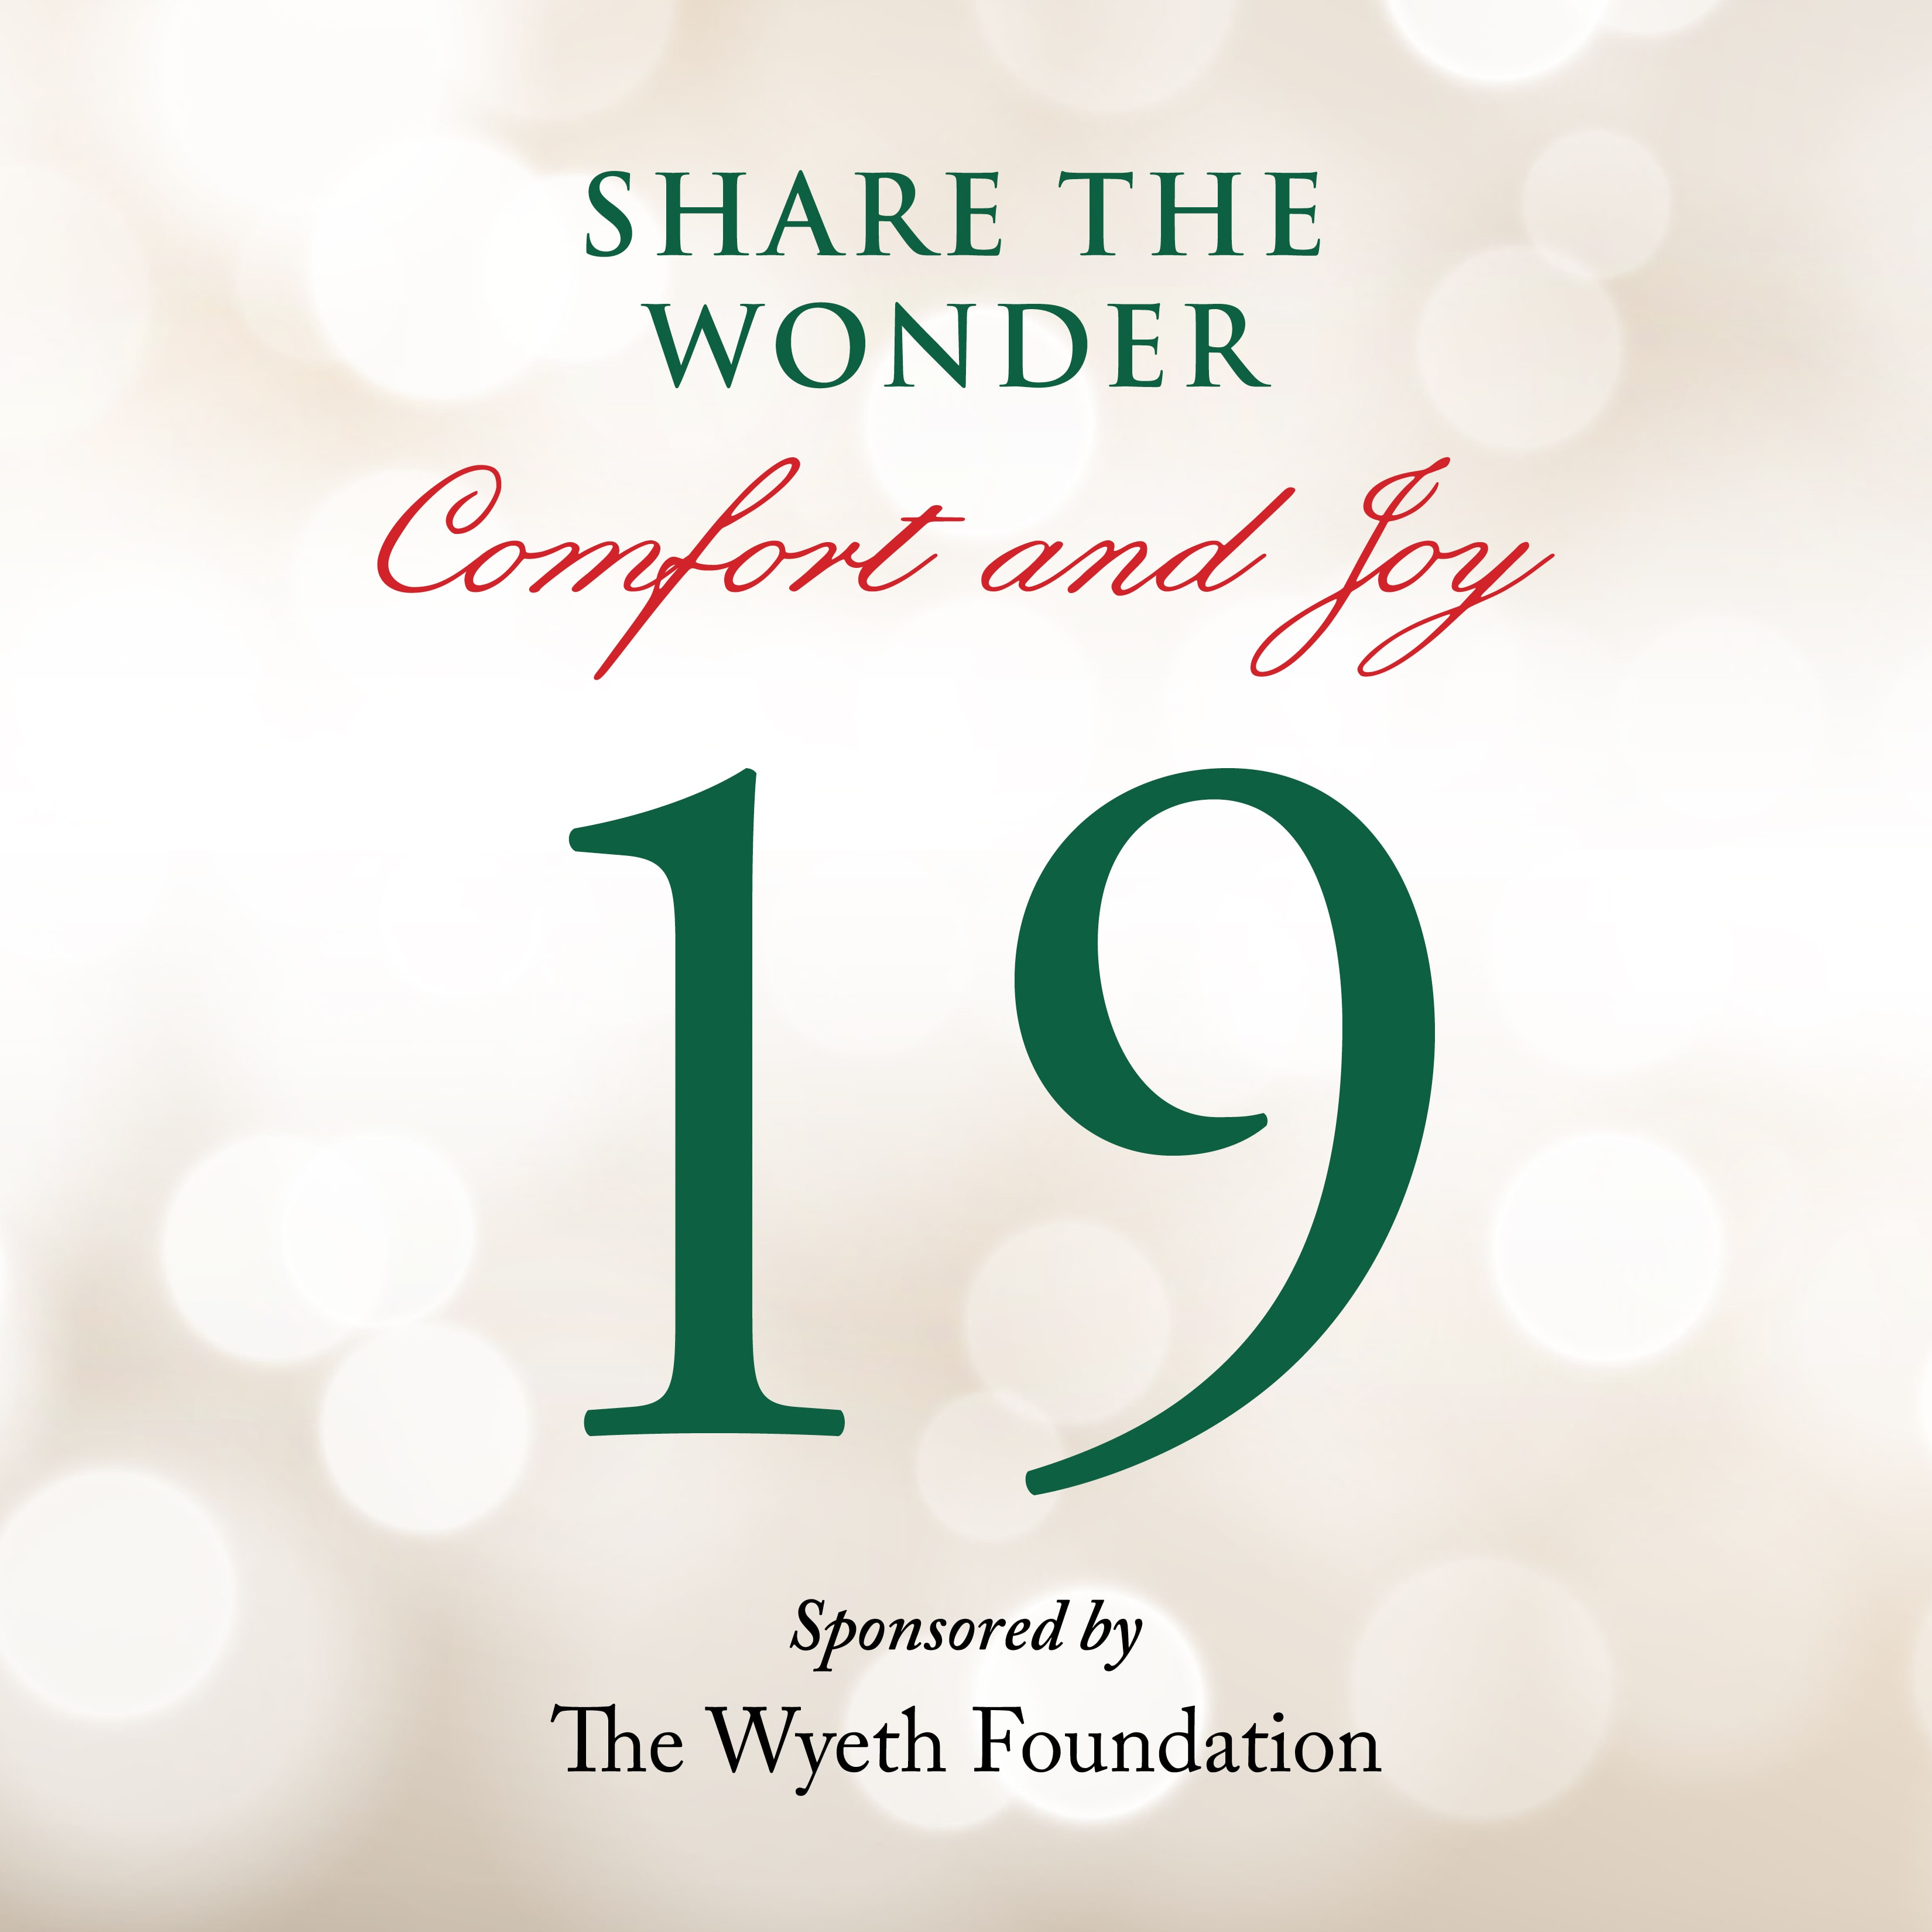 Day 19 of Share the Wonder: December 16